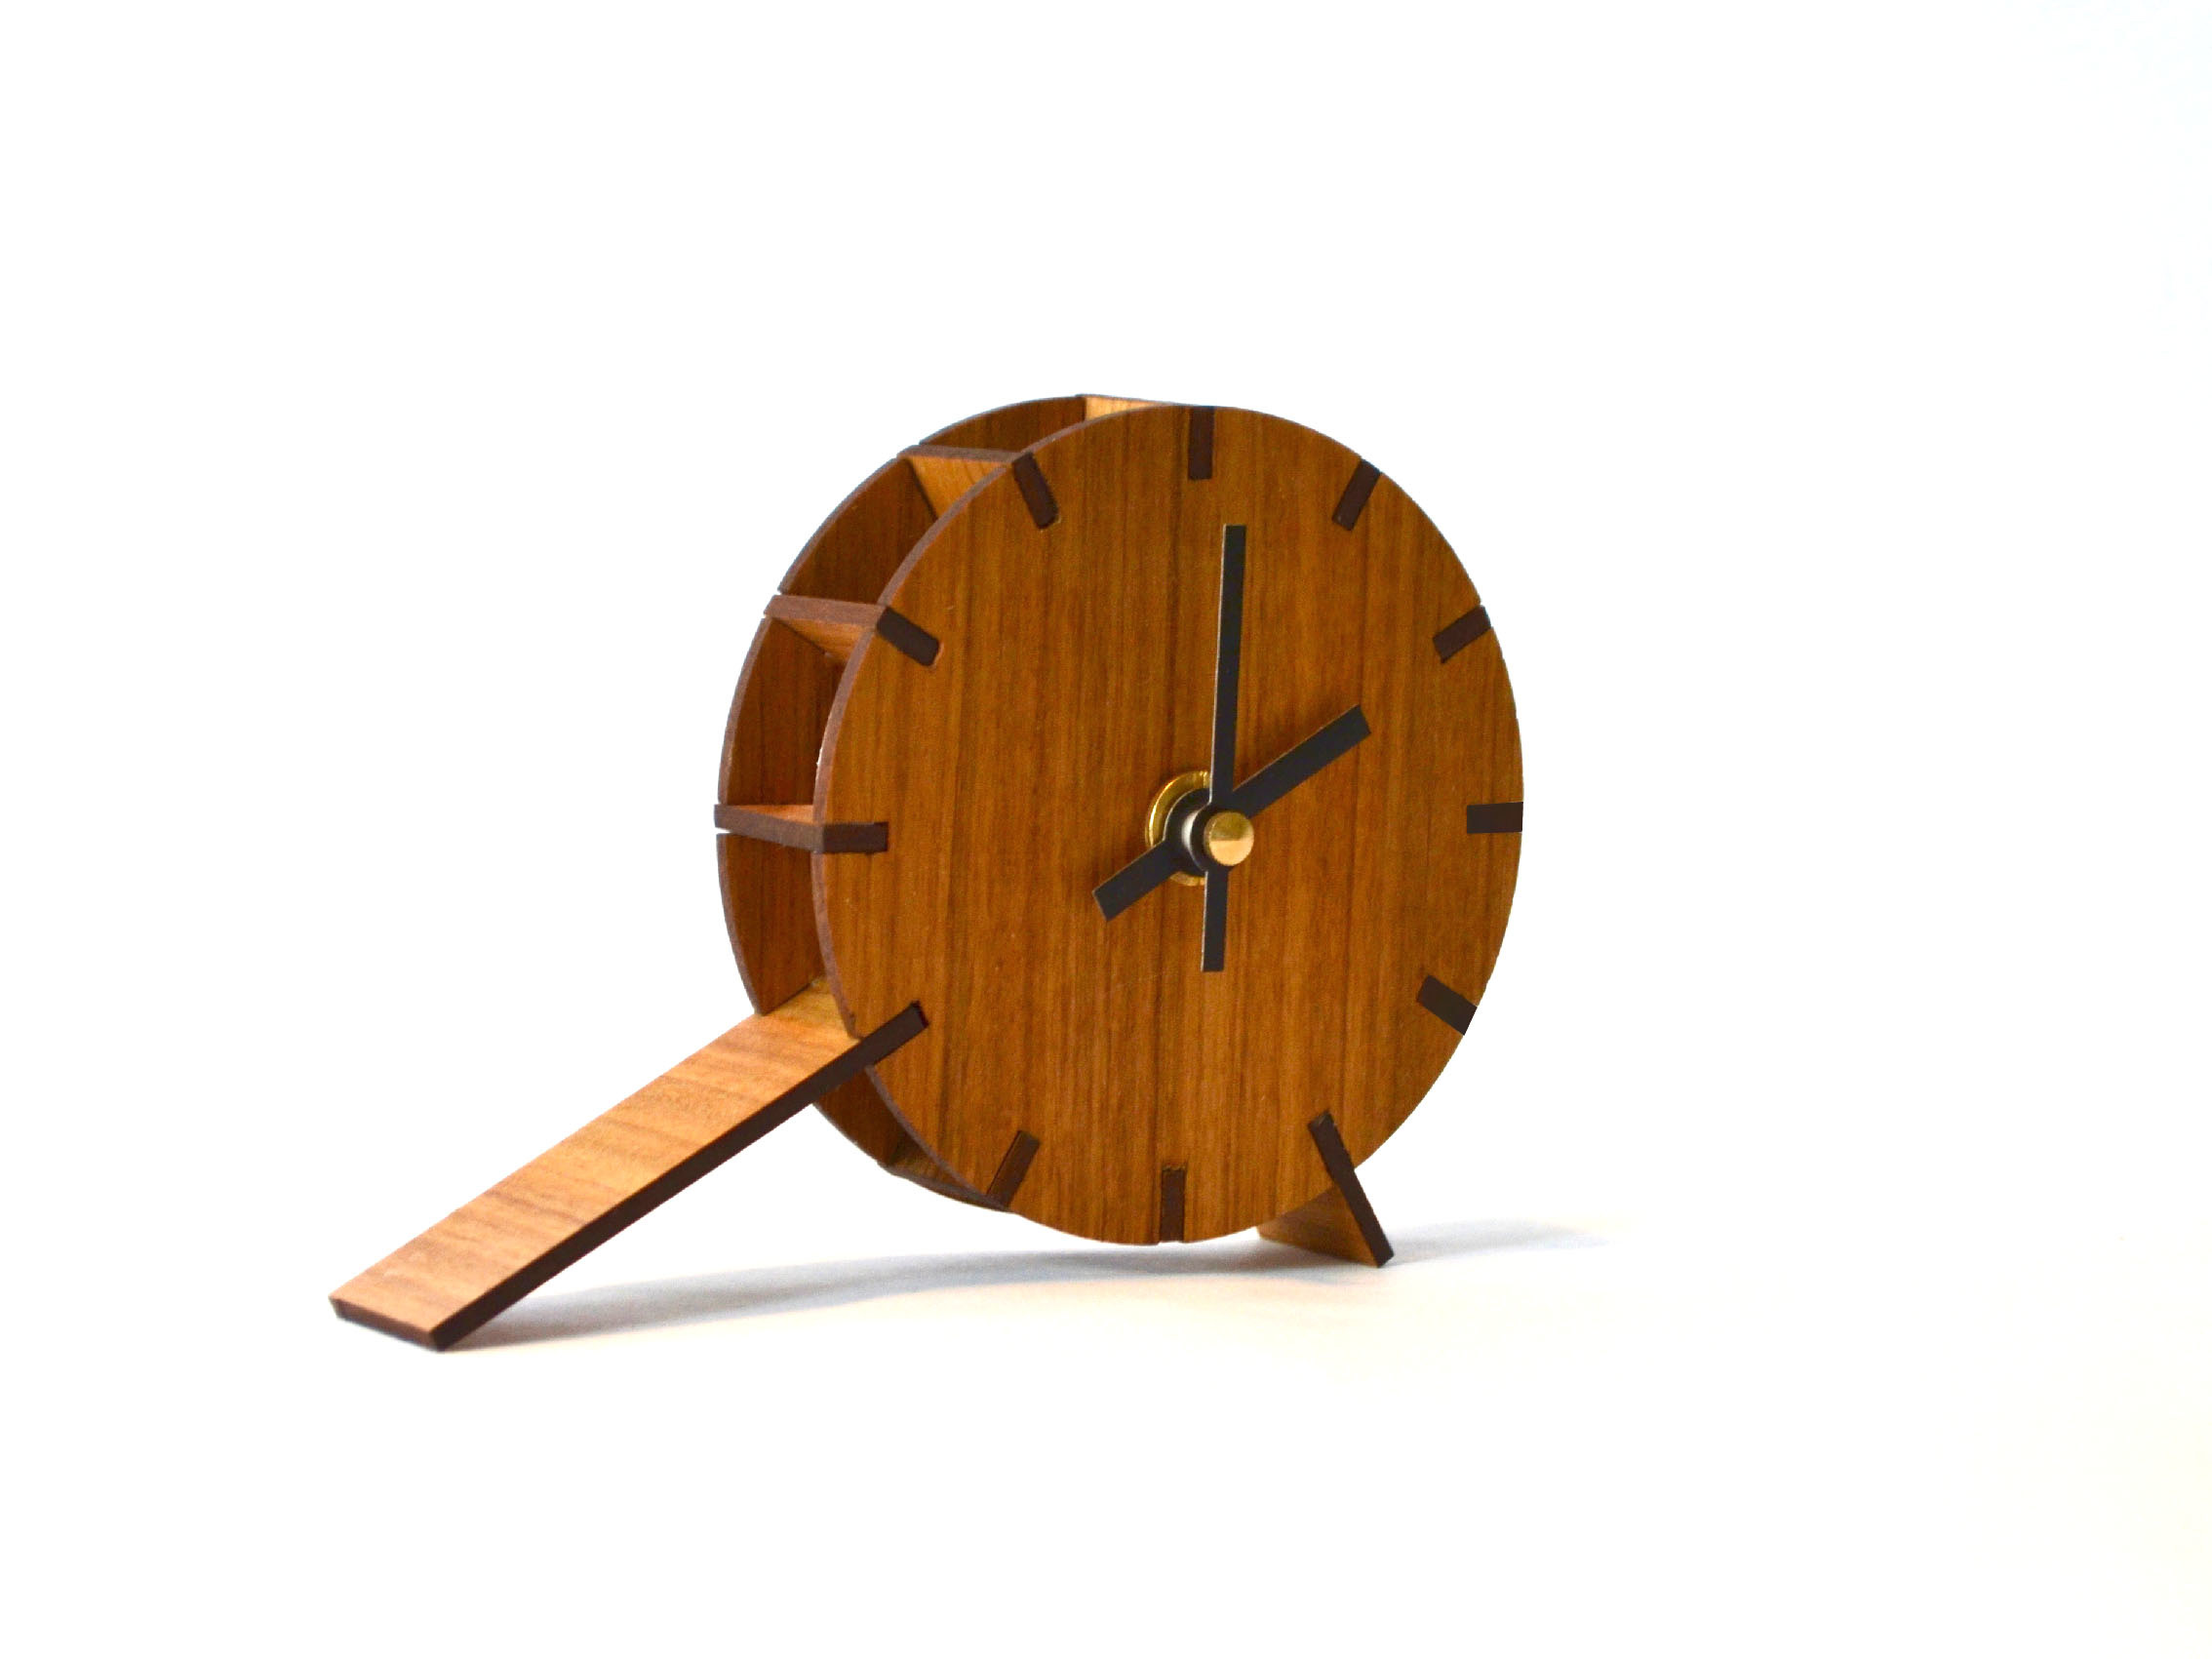 - The Table-Tock Clock has been created from an ethos of simple, functional design that carries with it a sense of character. The Table-Tock Clock achieves this by merging the structure, function and aesthetics into one.Made from laser cut walnut timber.